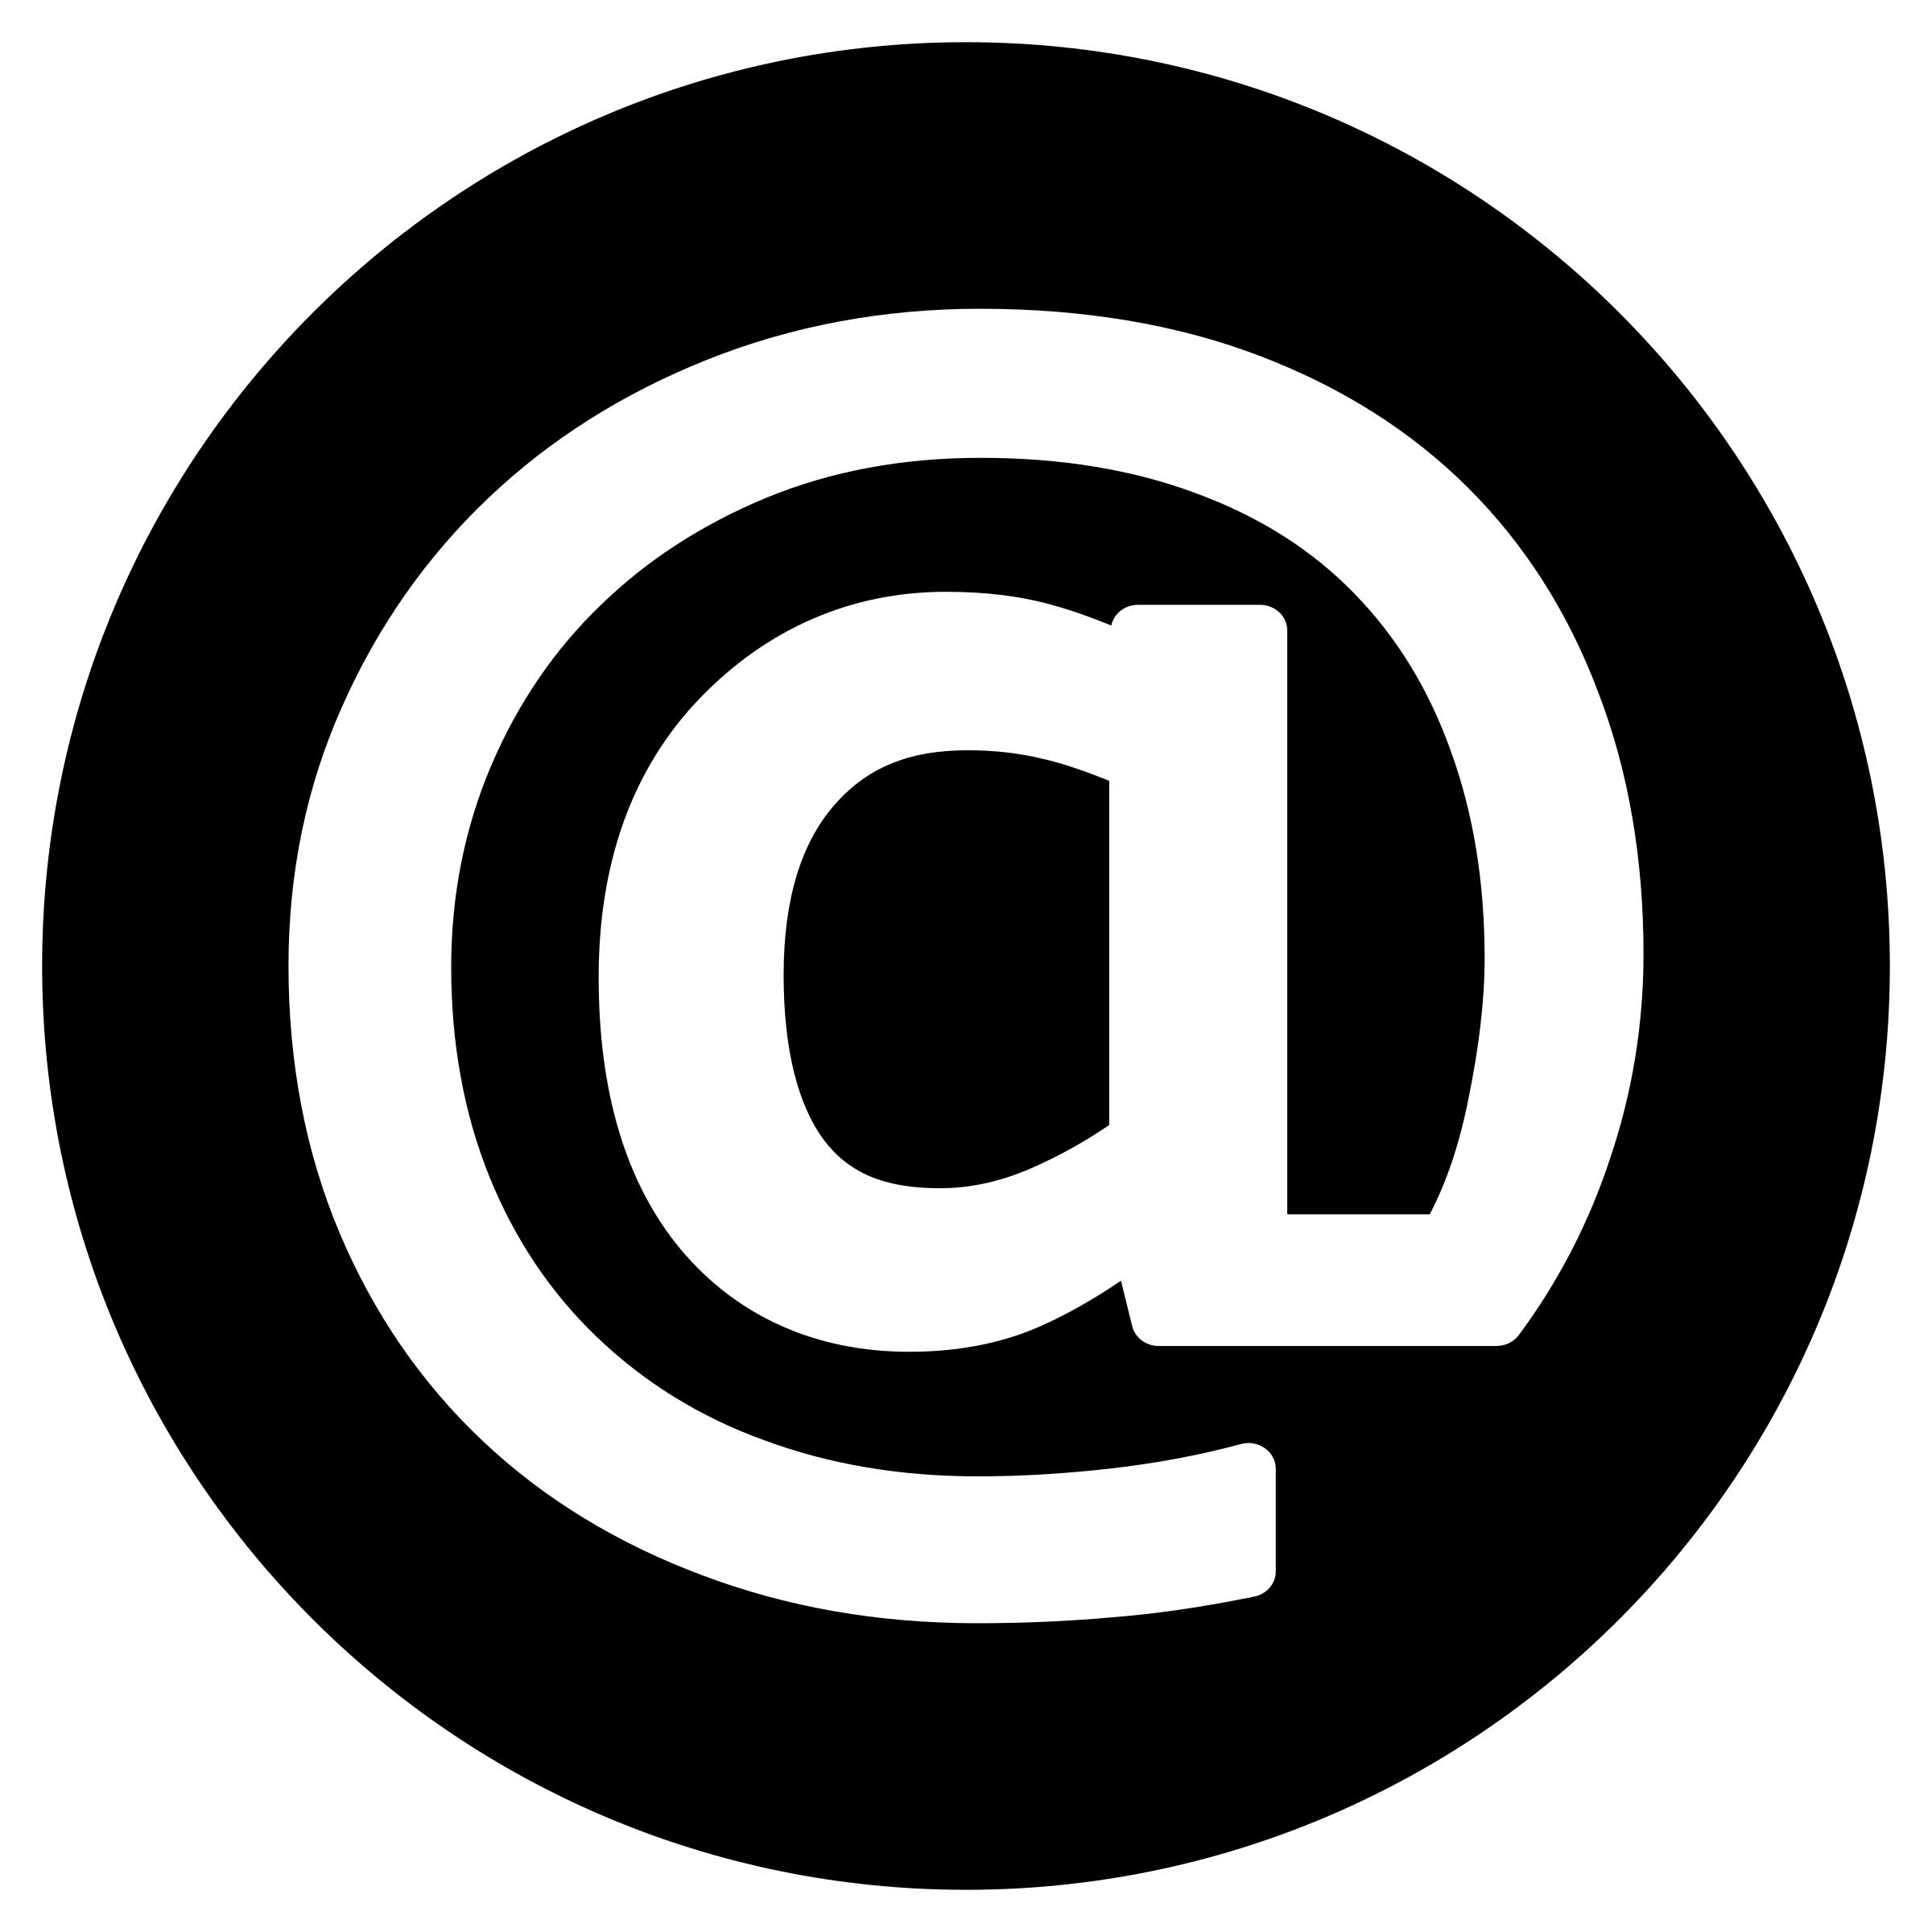 Mail clipart mail icon. Email white on black